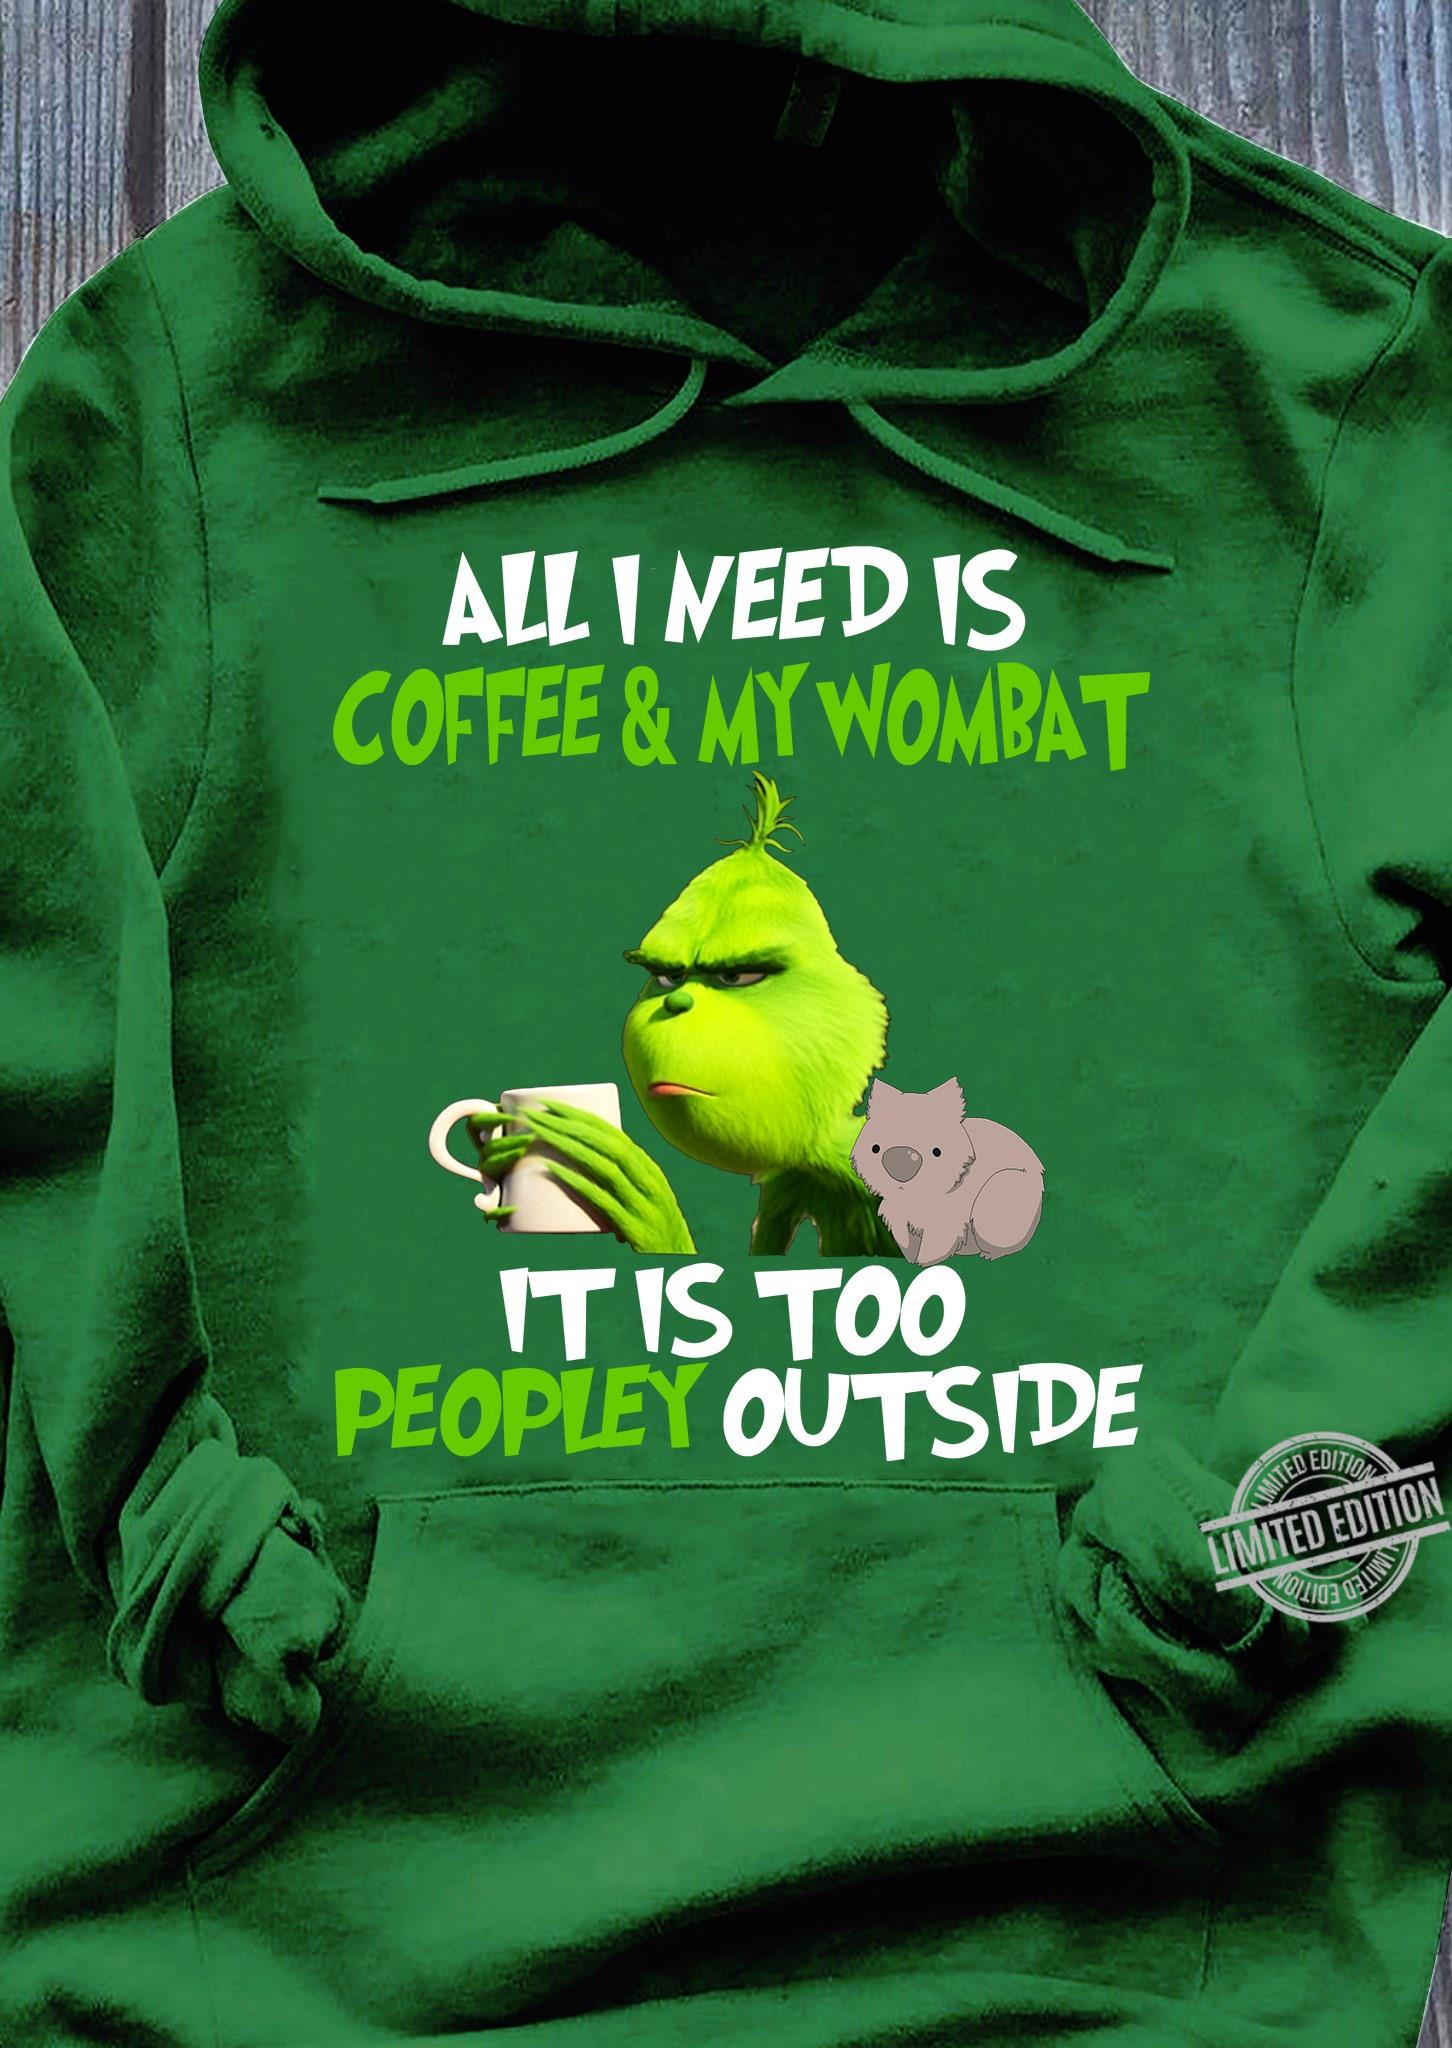 Grinch All I Need Is Coffee & My Wombat It Is Too Peopley Outside Shirt